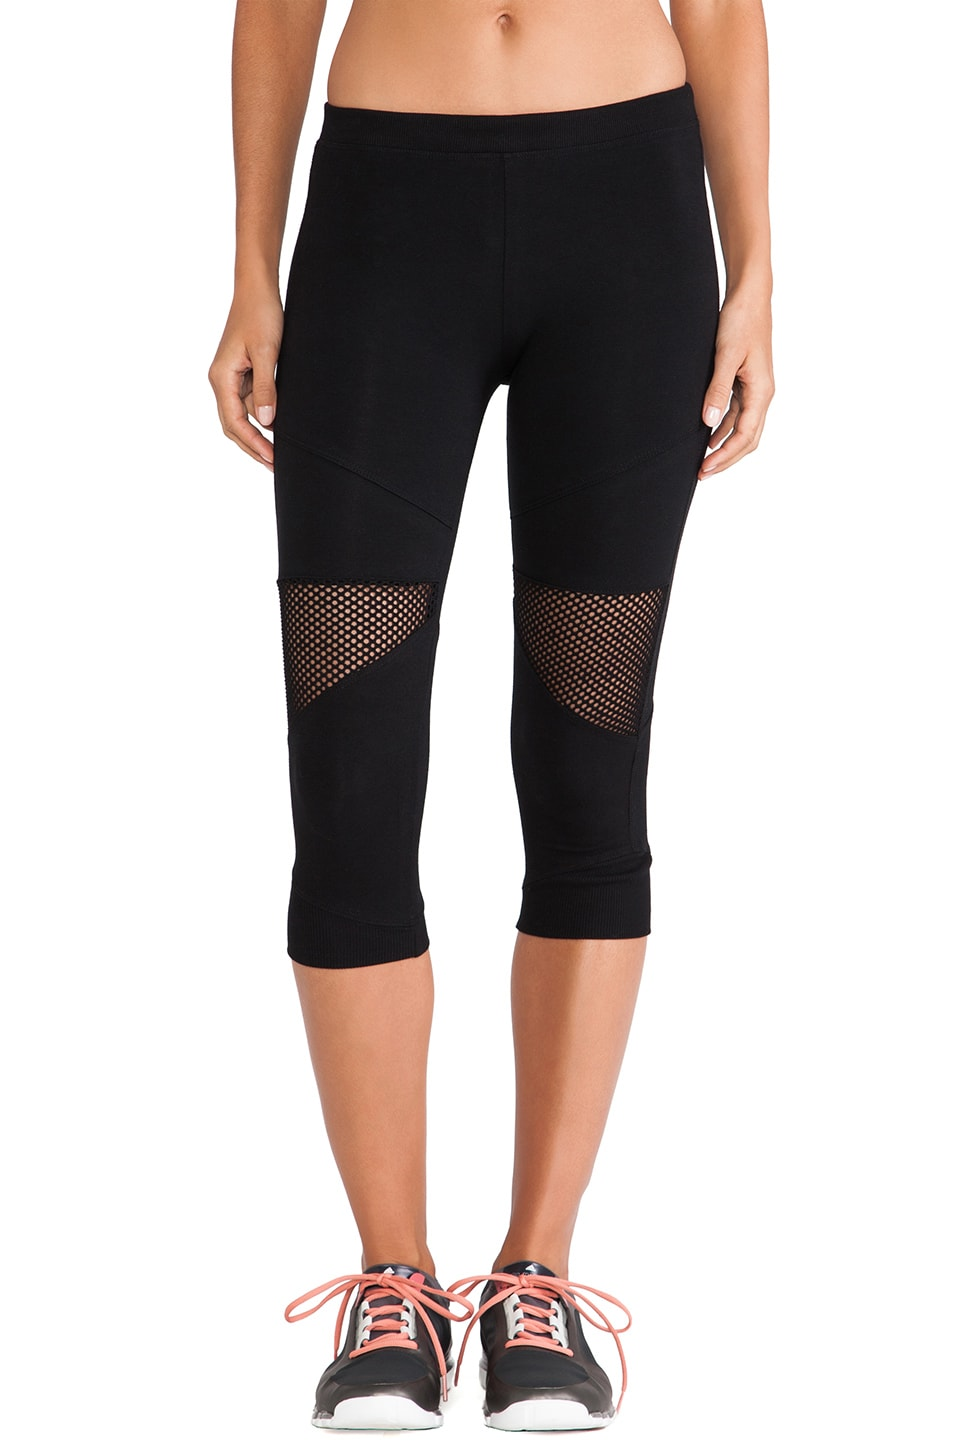 SOLOW Crop Mesh Legging in Black